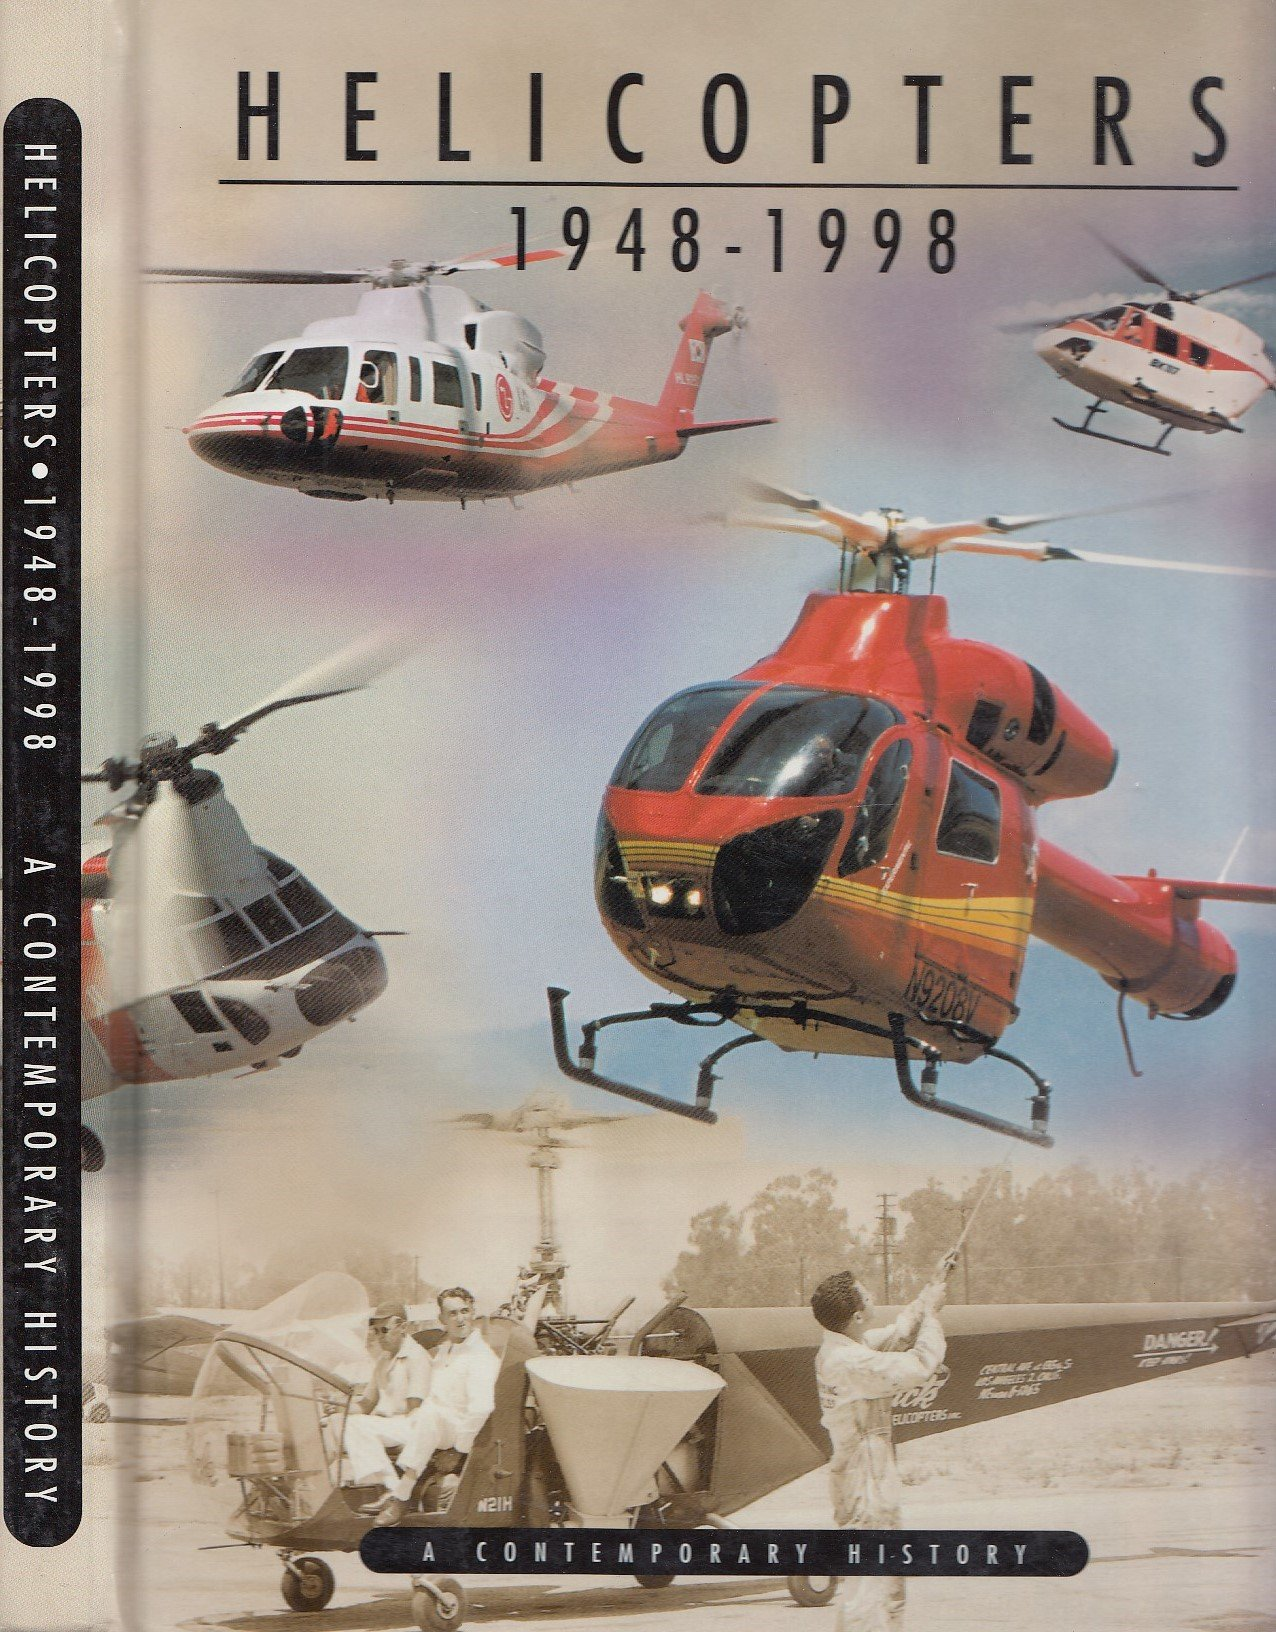 Helicopters, 1948-1998 : A Contemporary History